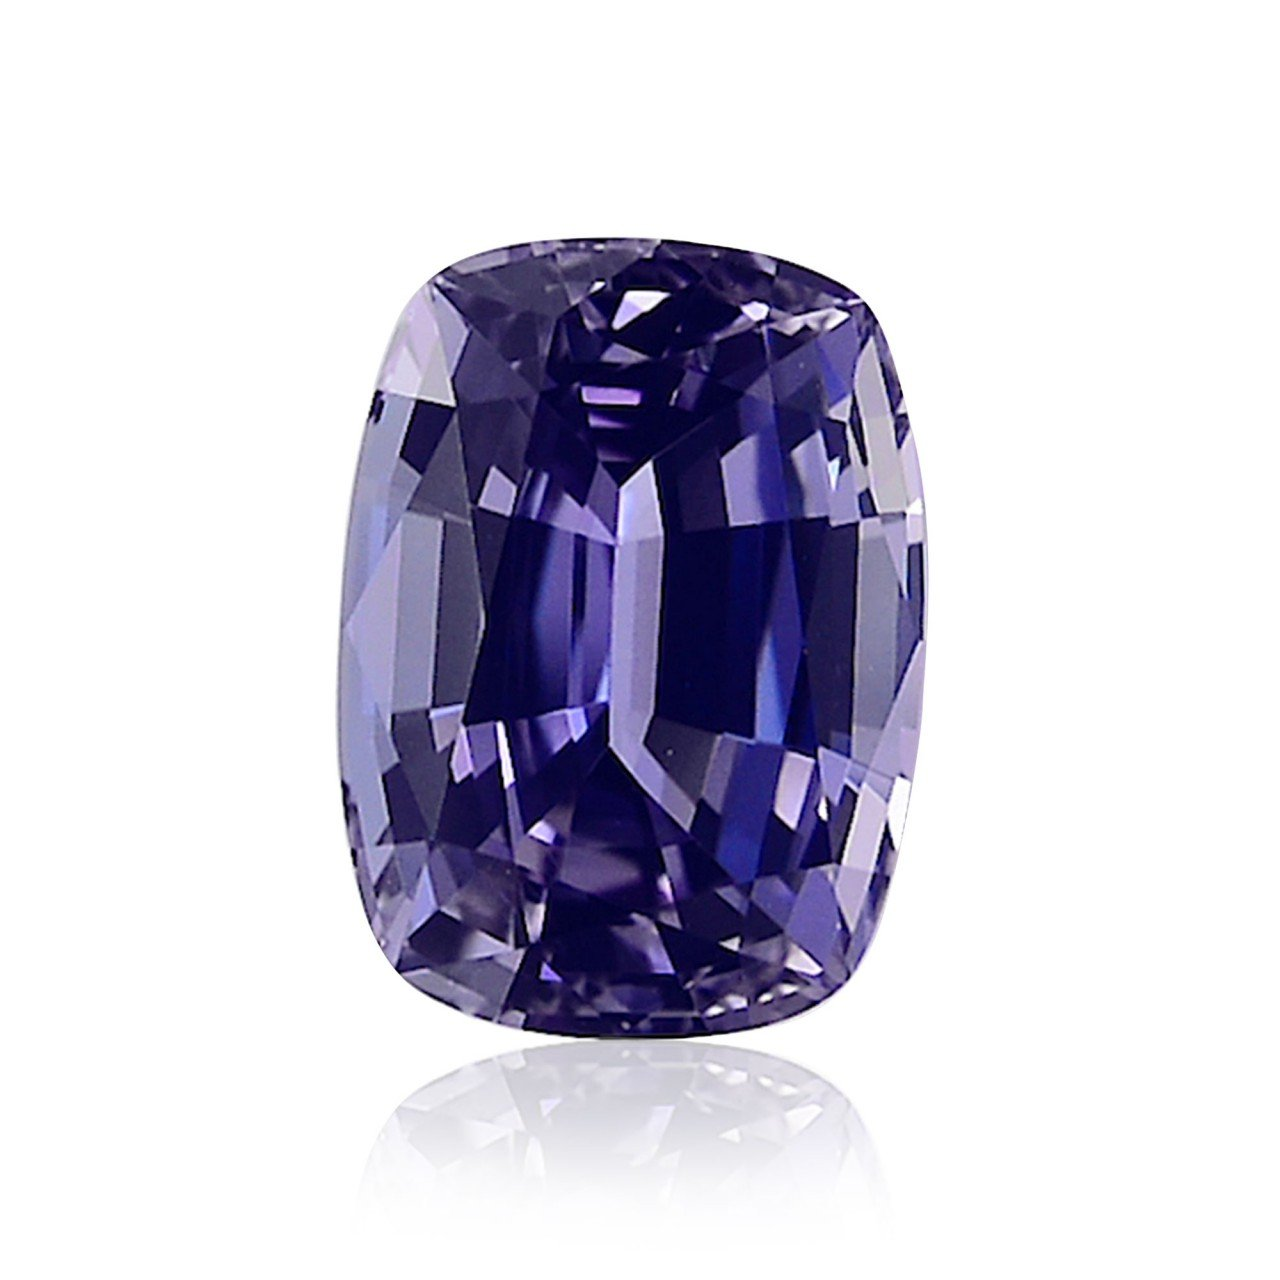 5.82 Carat Violet Tanzanite Loose Gemstone Cushion Cut EGL Certificate